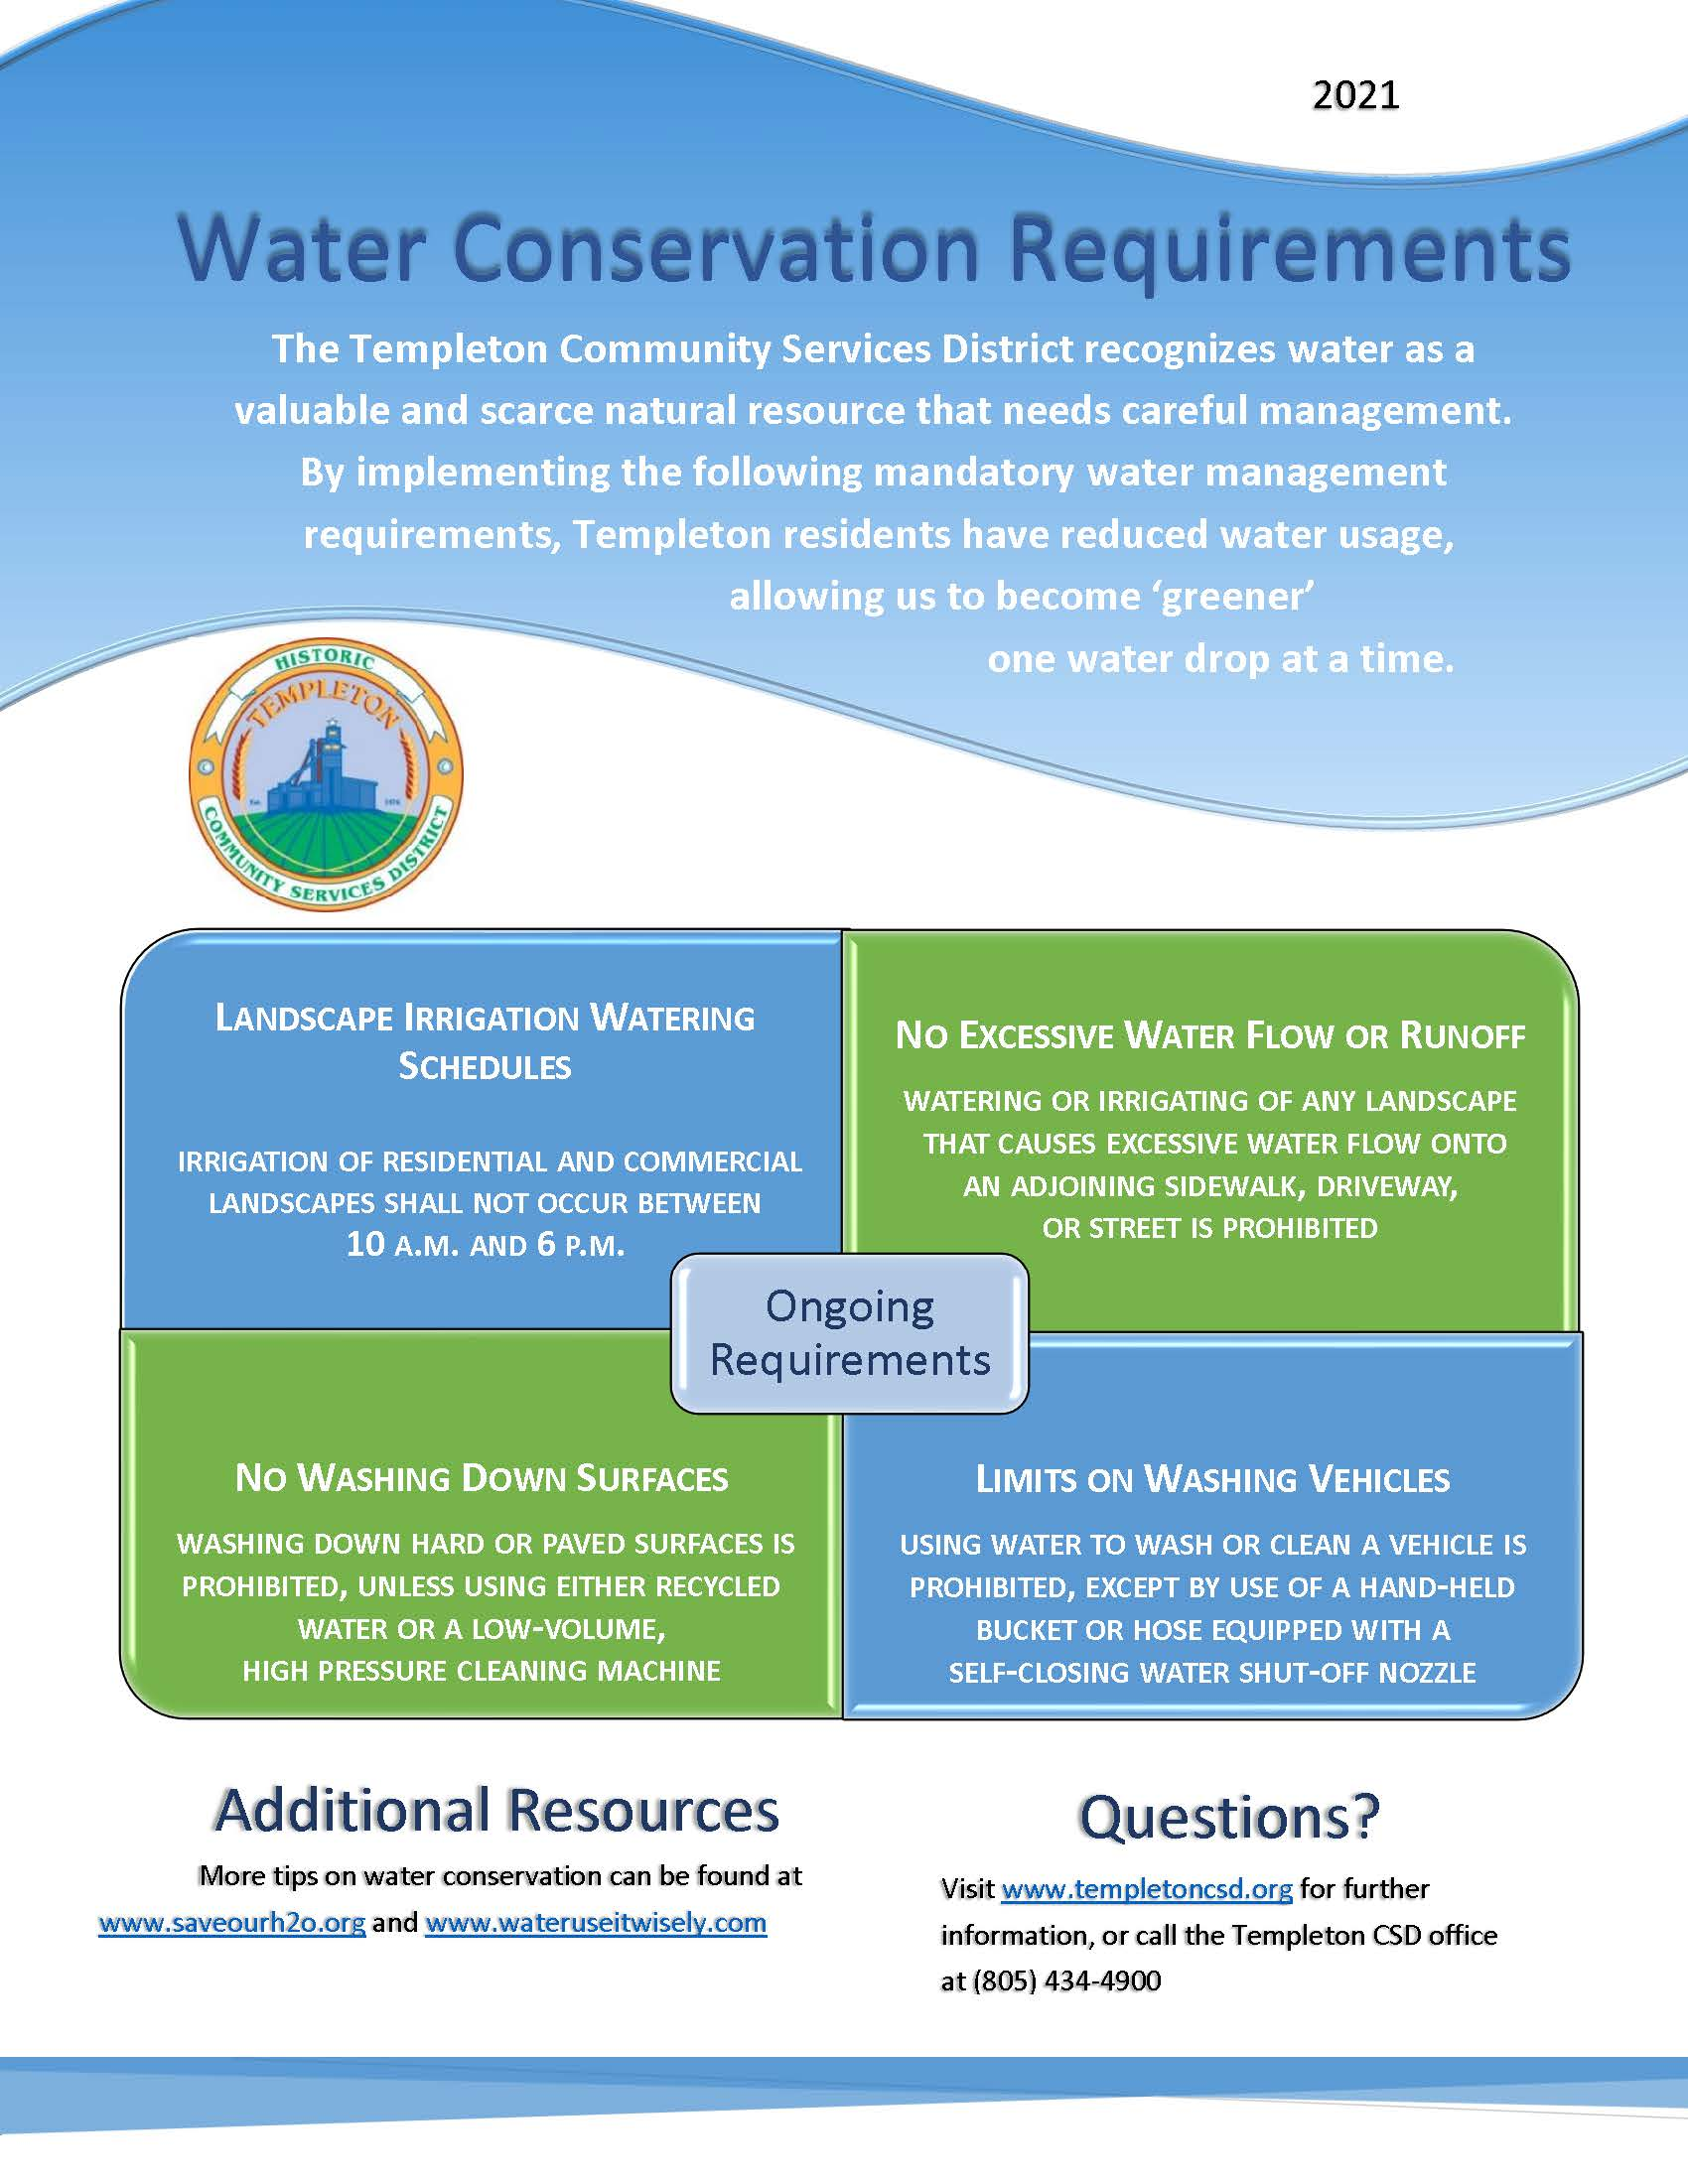 Conservation Requirements Flyer 2021